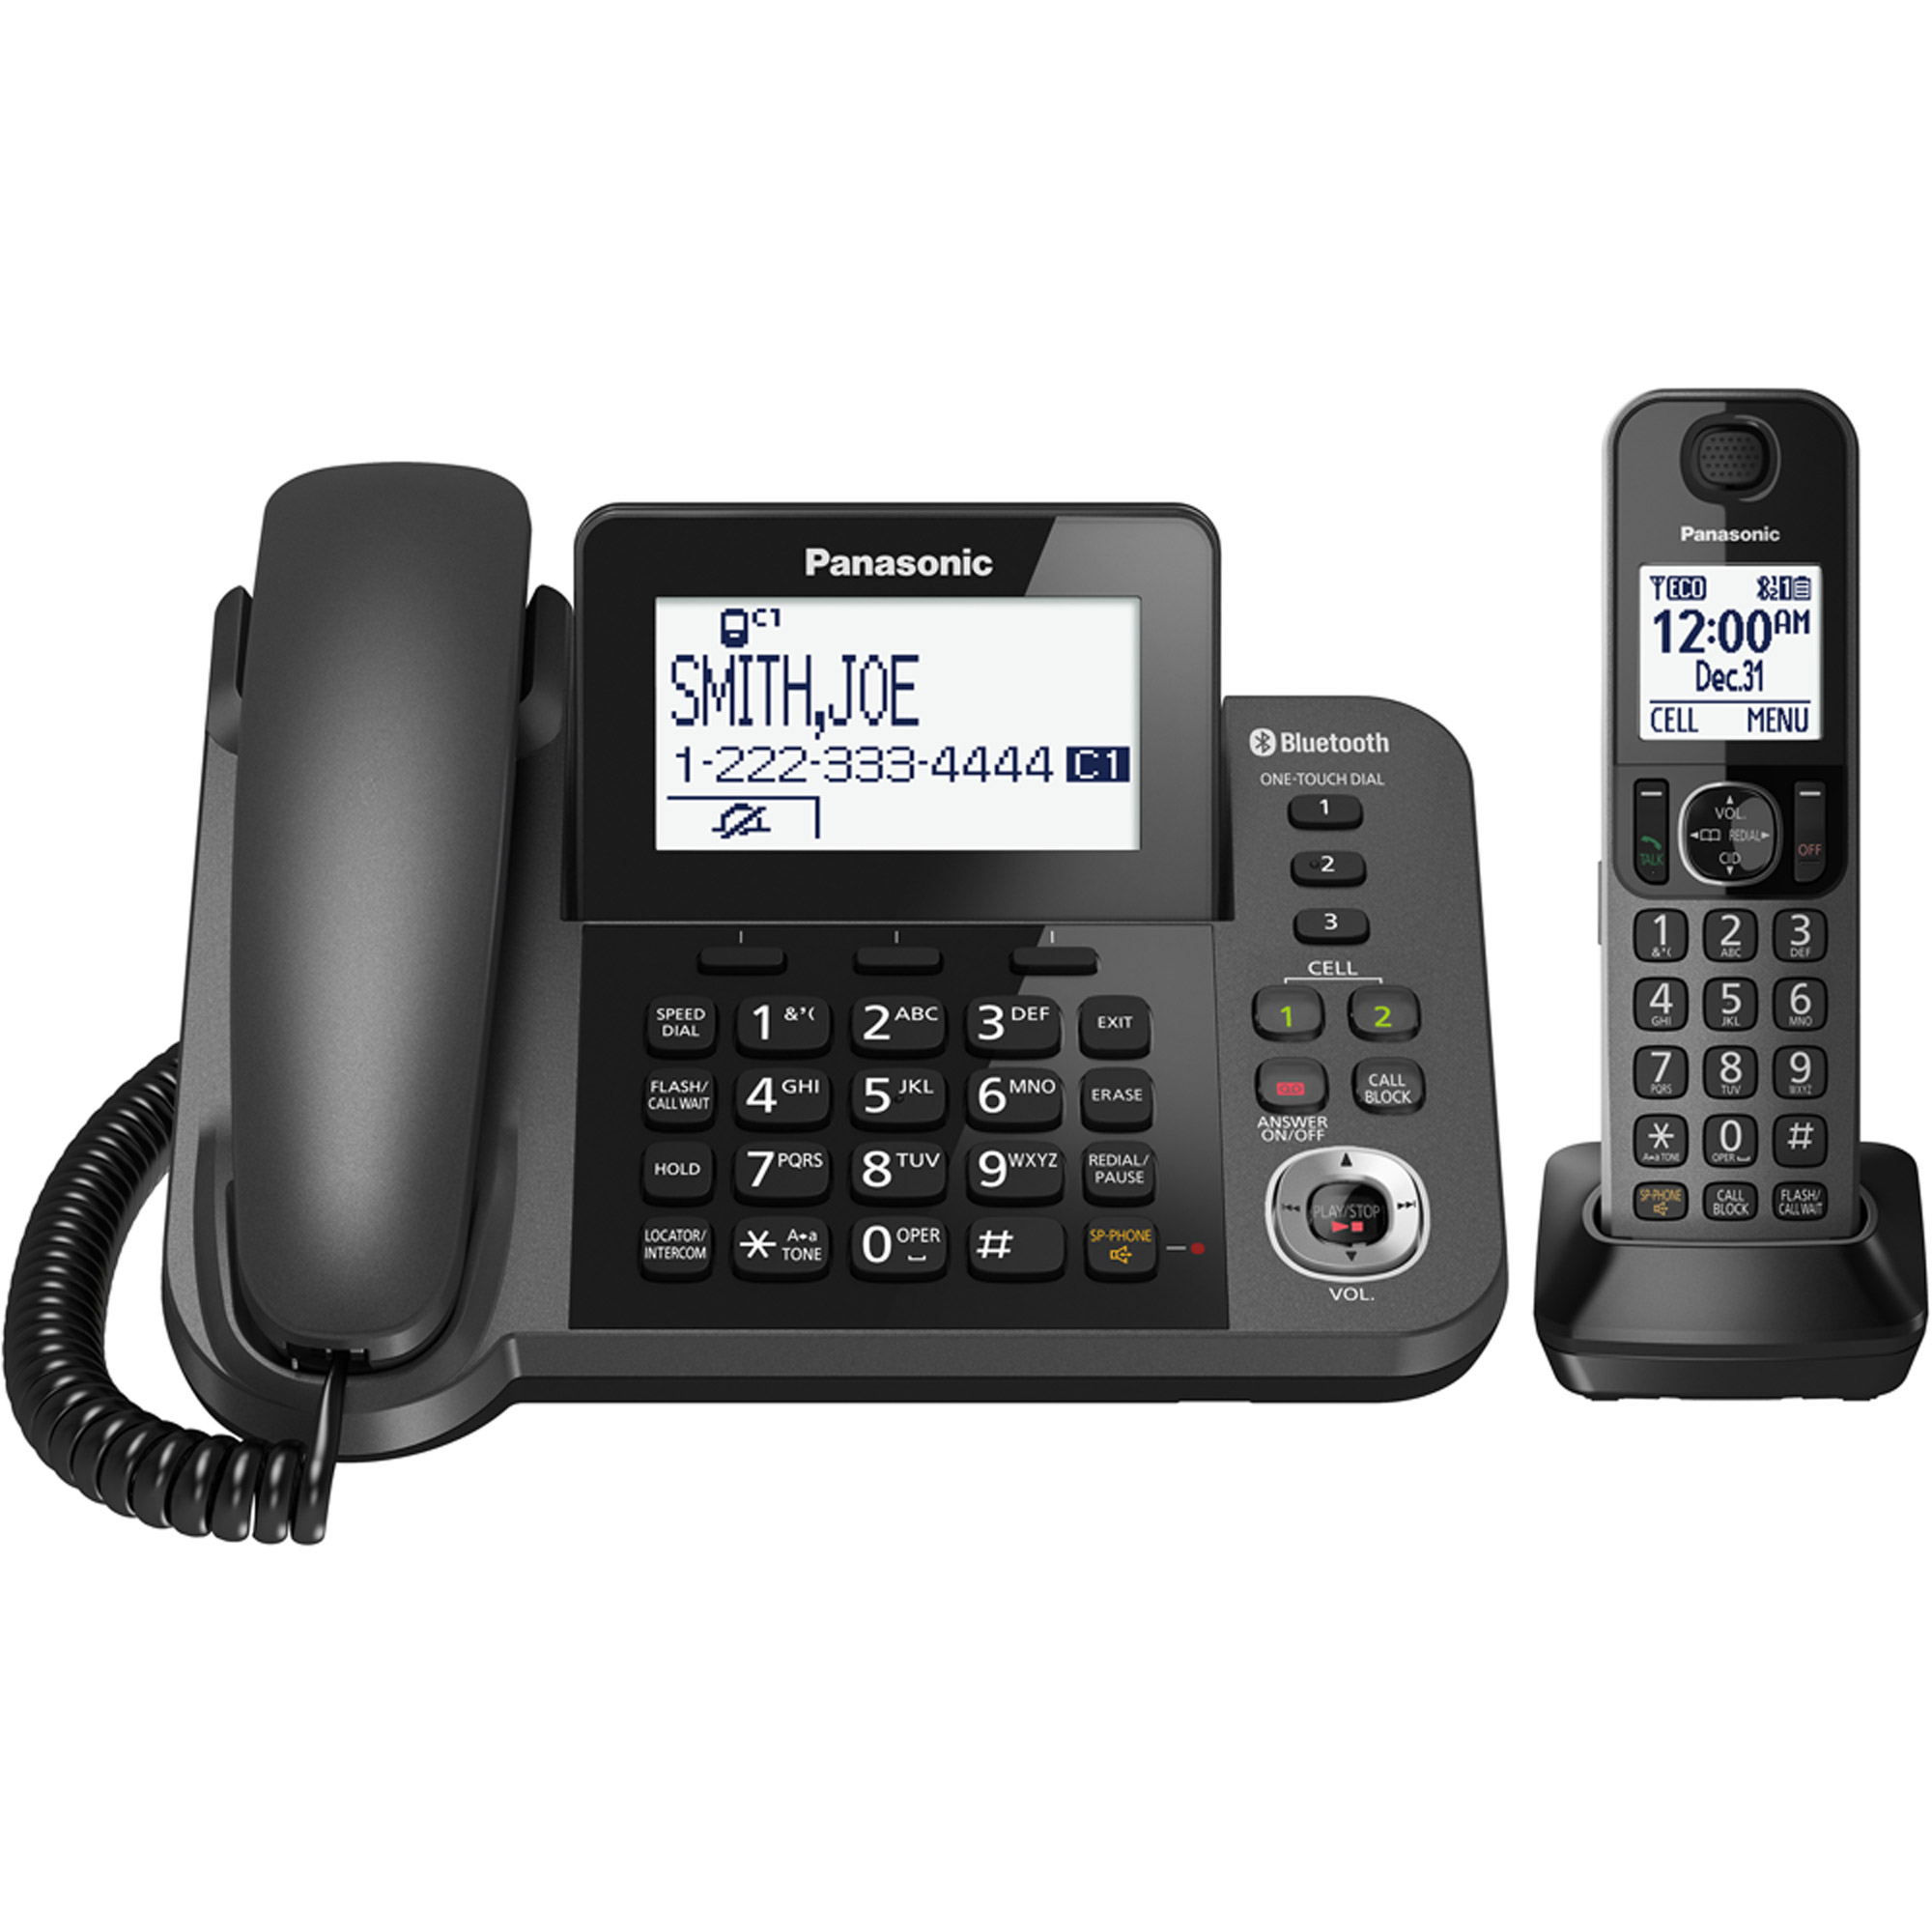 Panasonic Link2Cell Bluetooth Cordless Phone and Answering Machine with 1 Handset